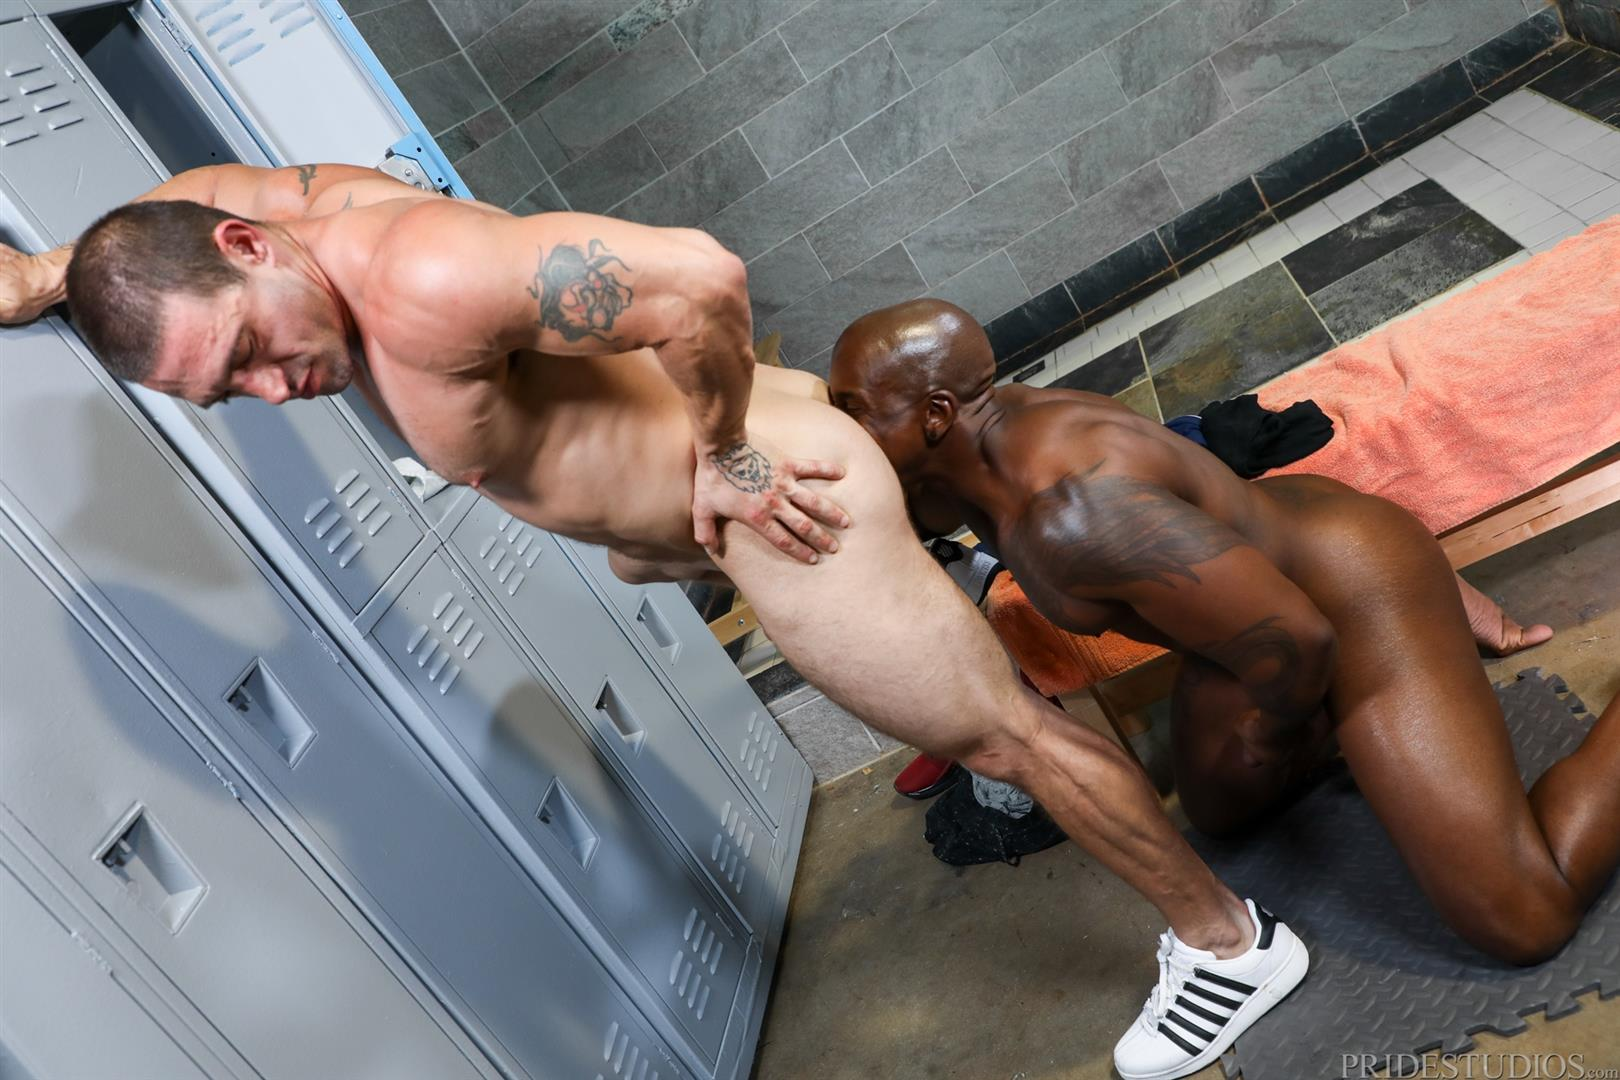 Extra-Big-Dicks-Max-Konnor-and-Ceasar-Ventura-Interracial-Bareback-Fucking-Big-Black-Cock-06 Cruising For Bareback Big Black Dick At The Gym